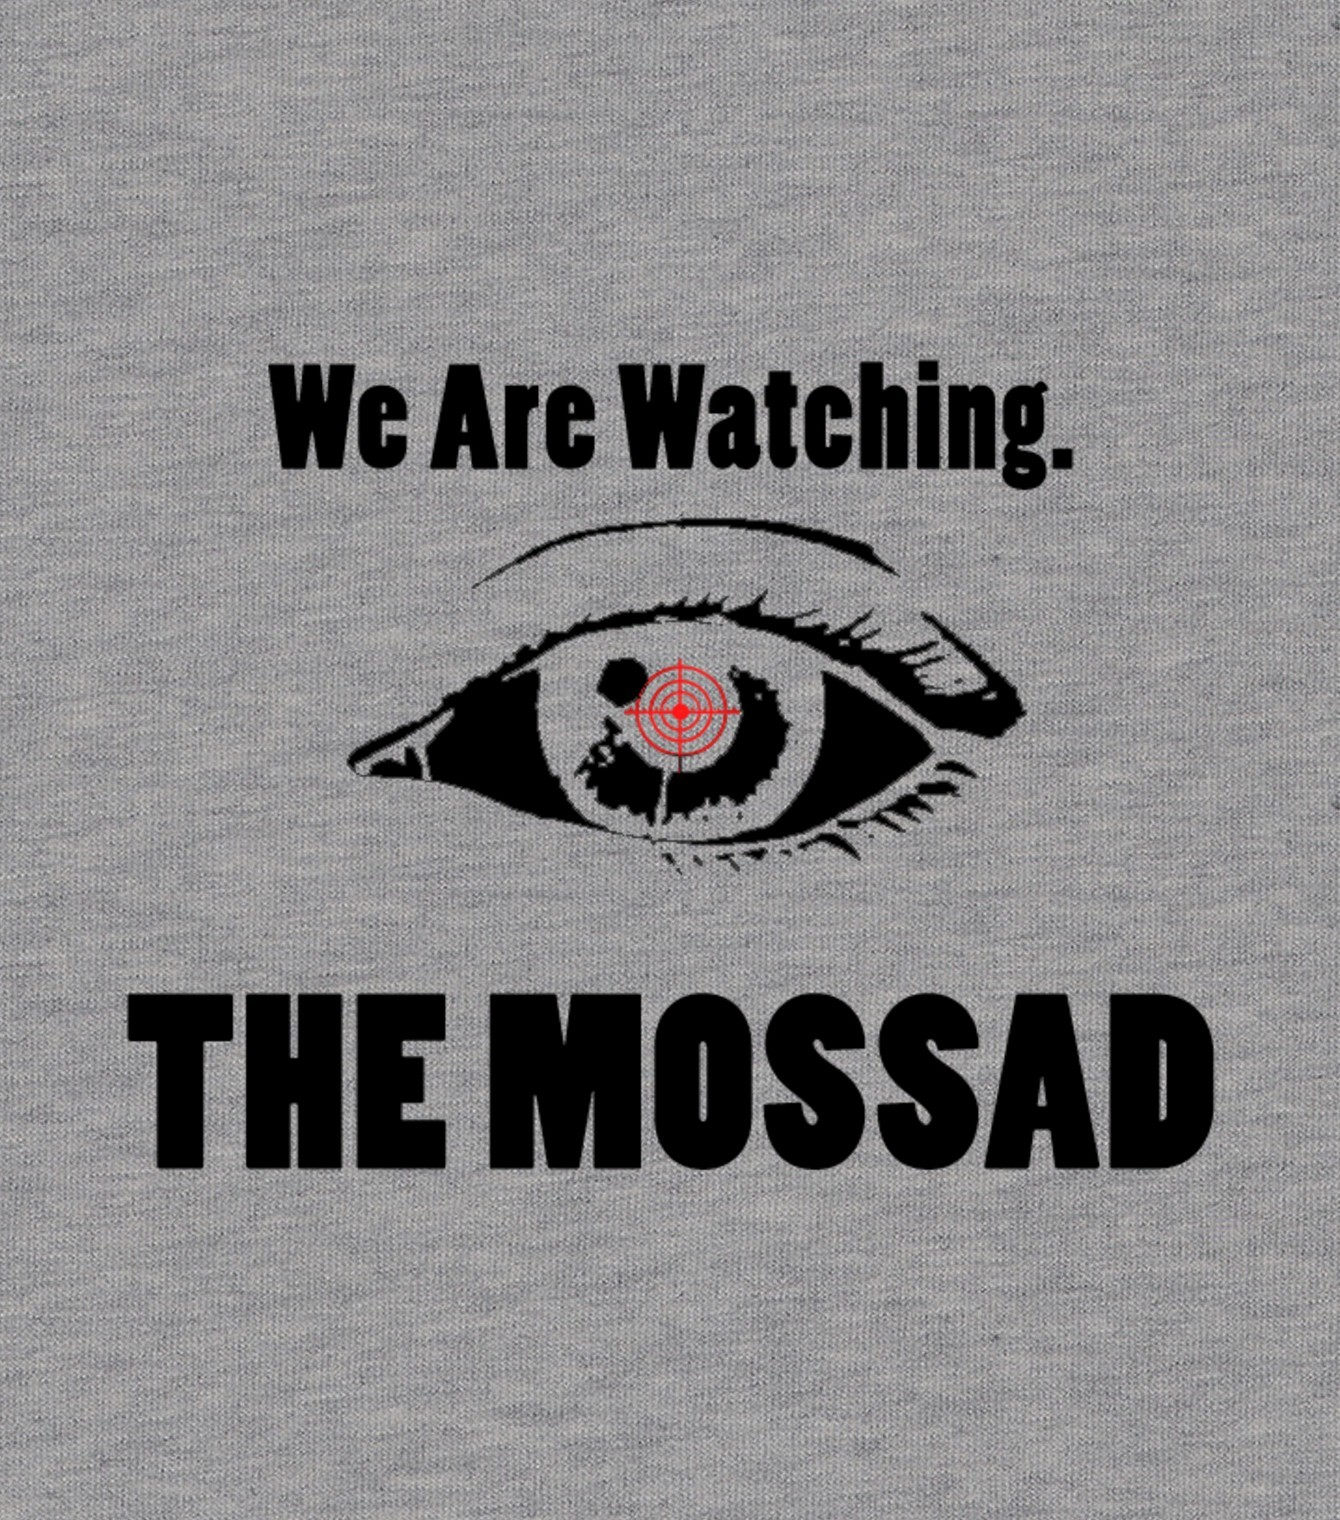 Stand Out Designs Shirts : Mossad shirt israeli t